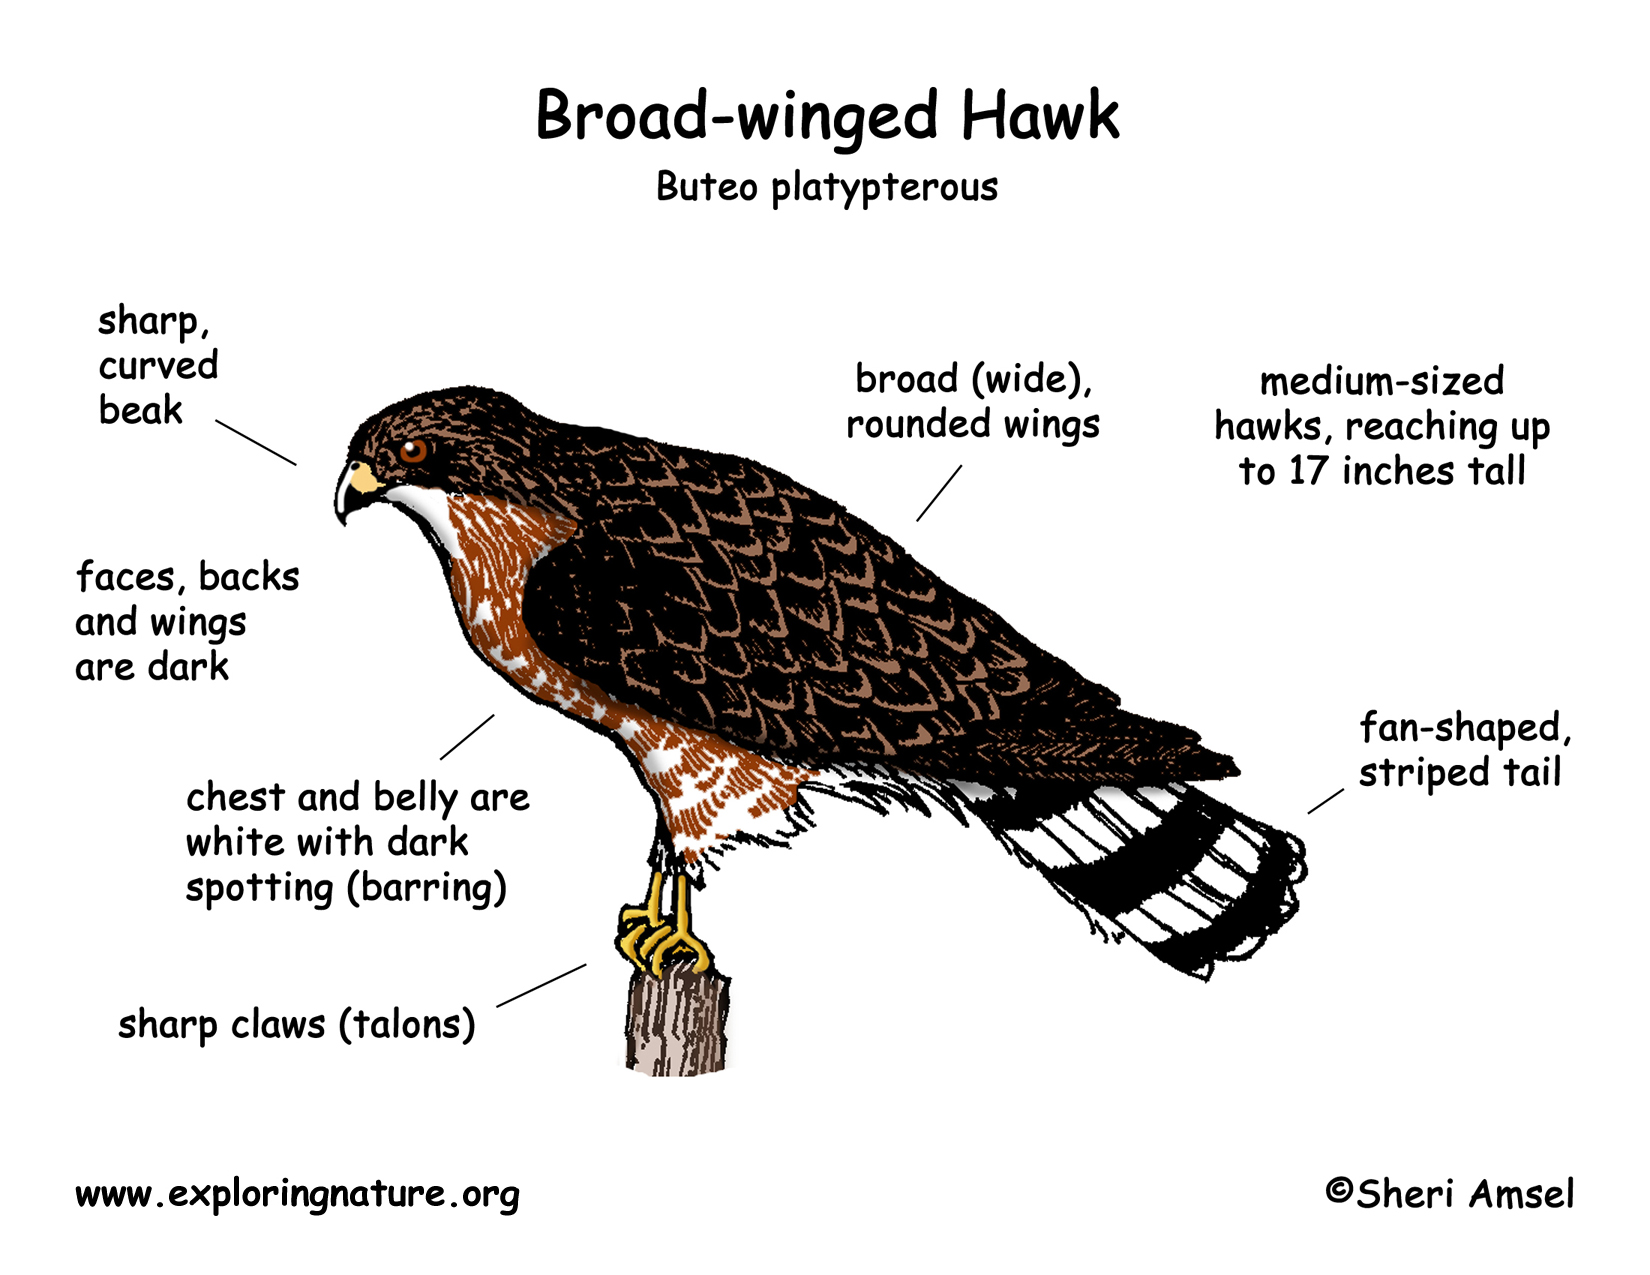 eagle wing diagram wein bridge oscillator circuit hawk broad winged